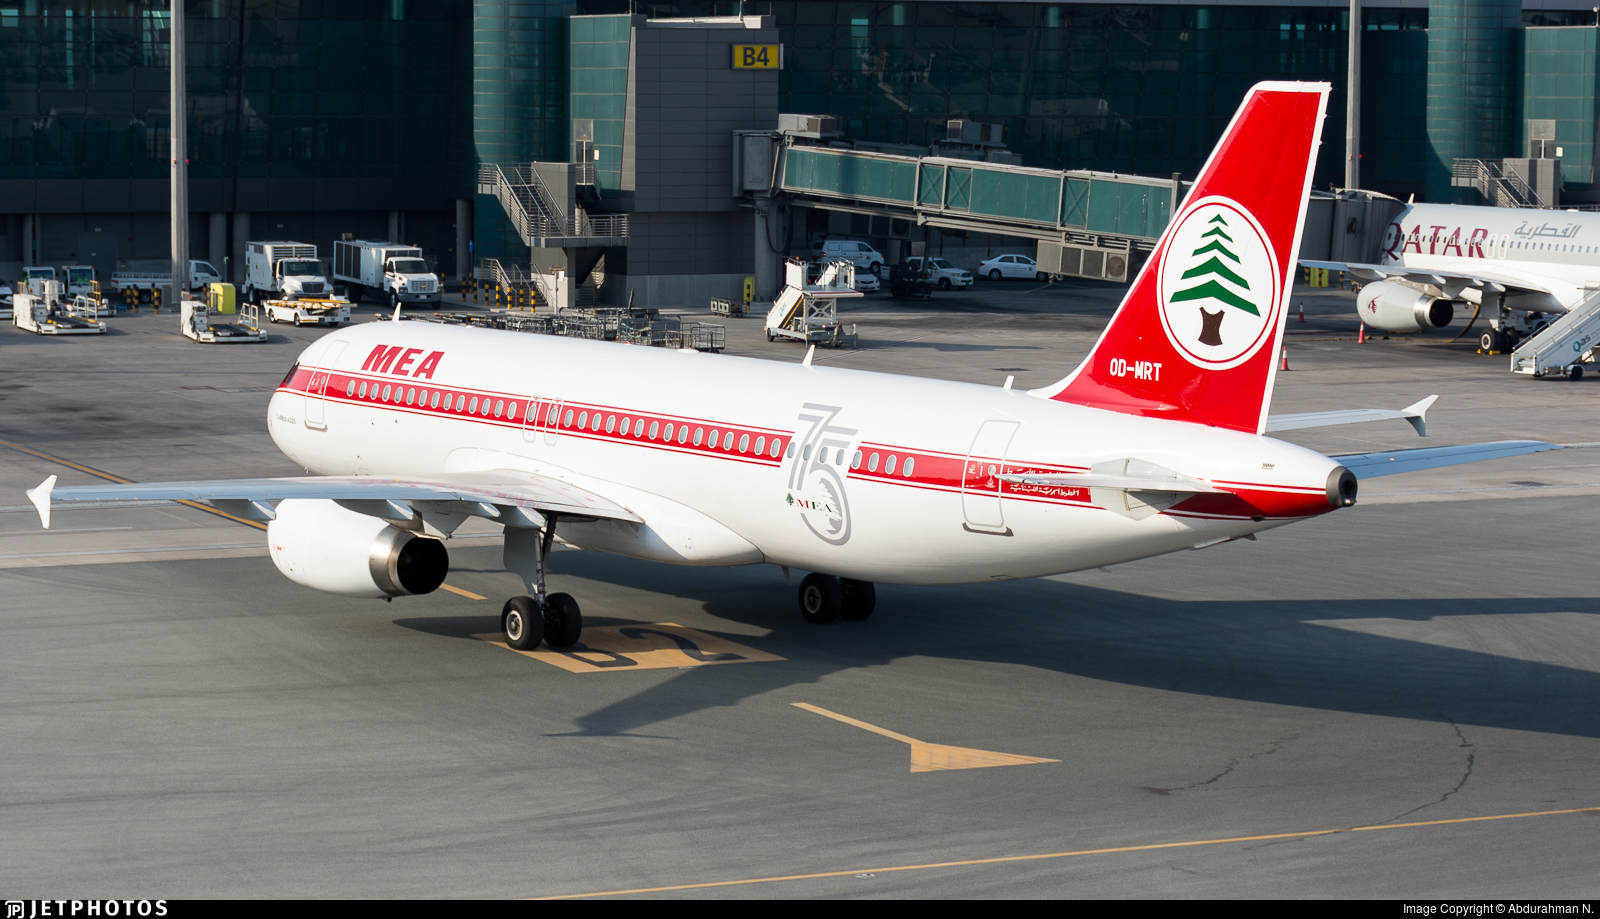 Middle East Airlines call sign Cedar Jet